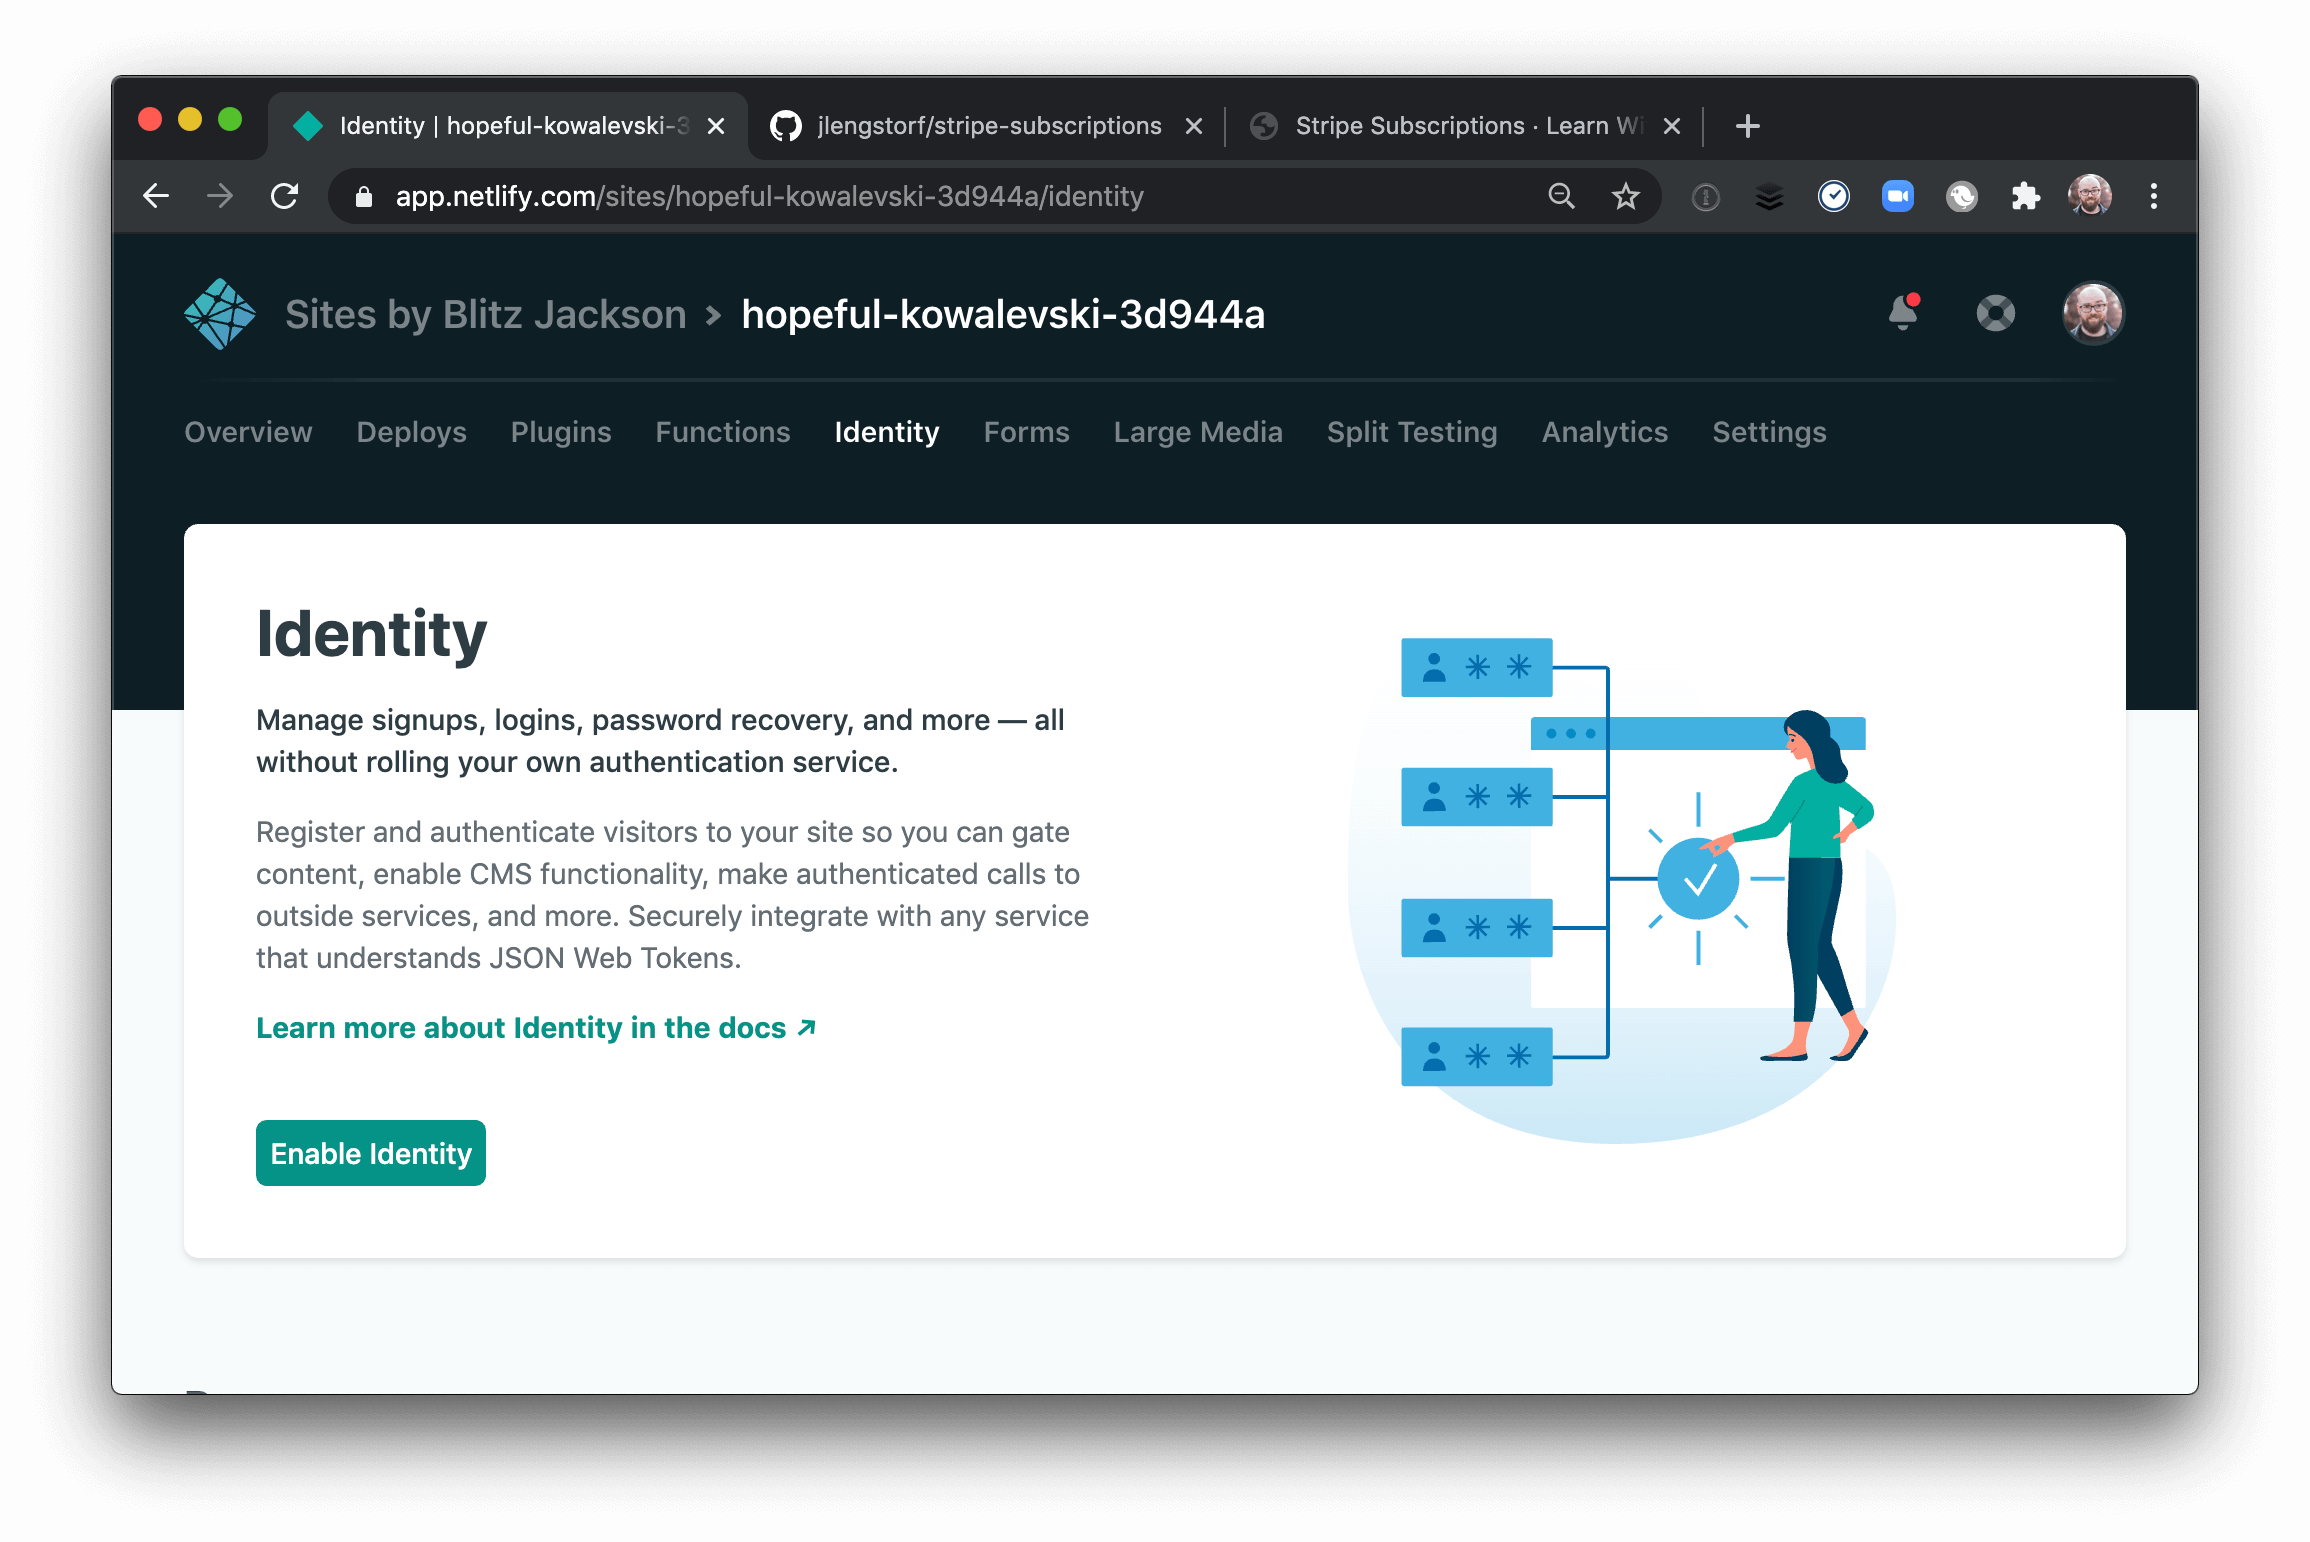 The UI to enable Netlify Identity in the Netlify dashboard.